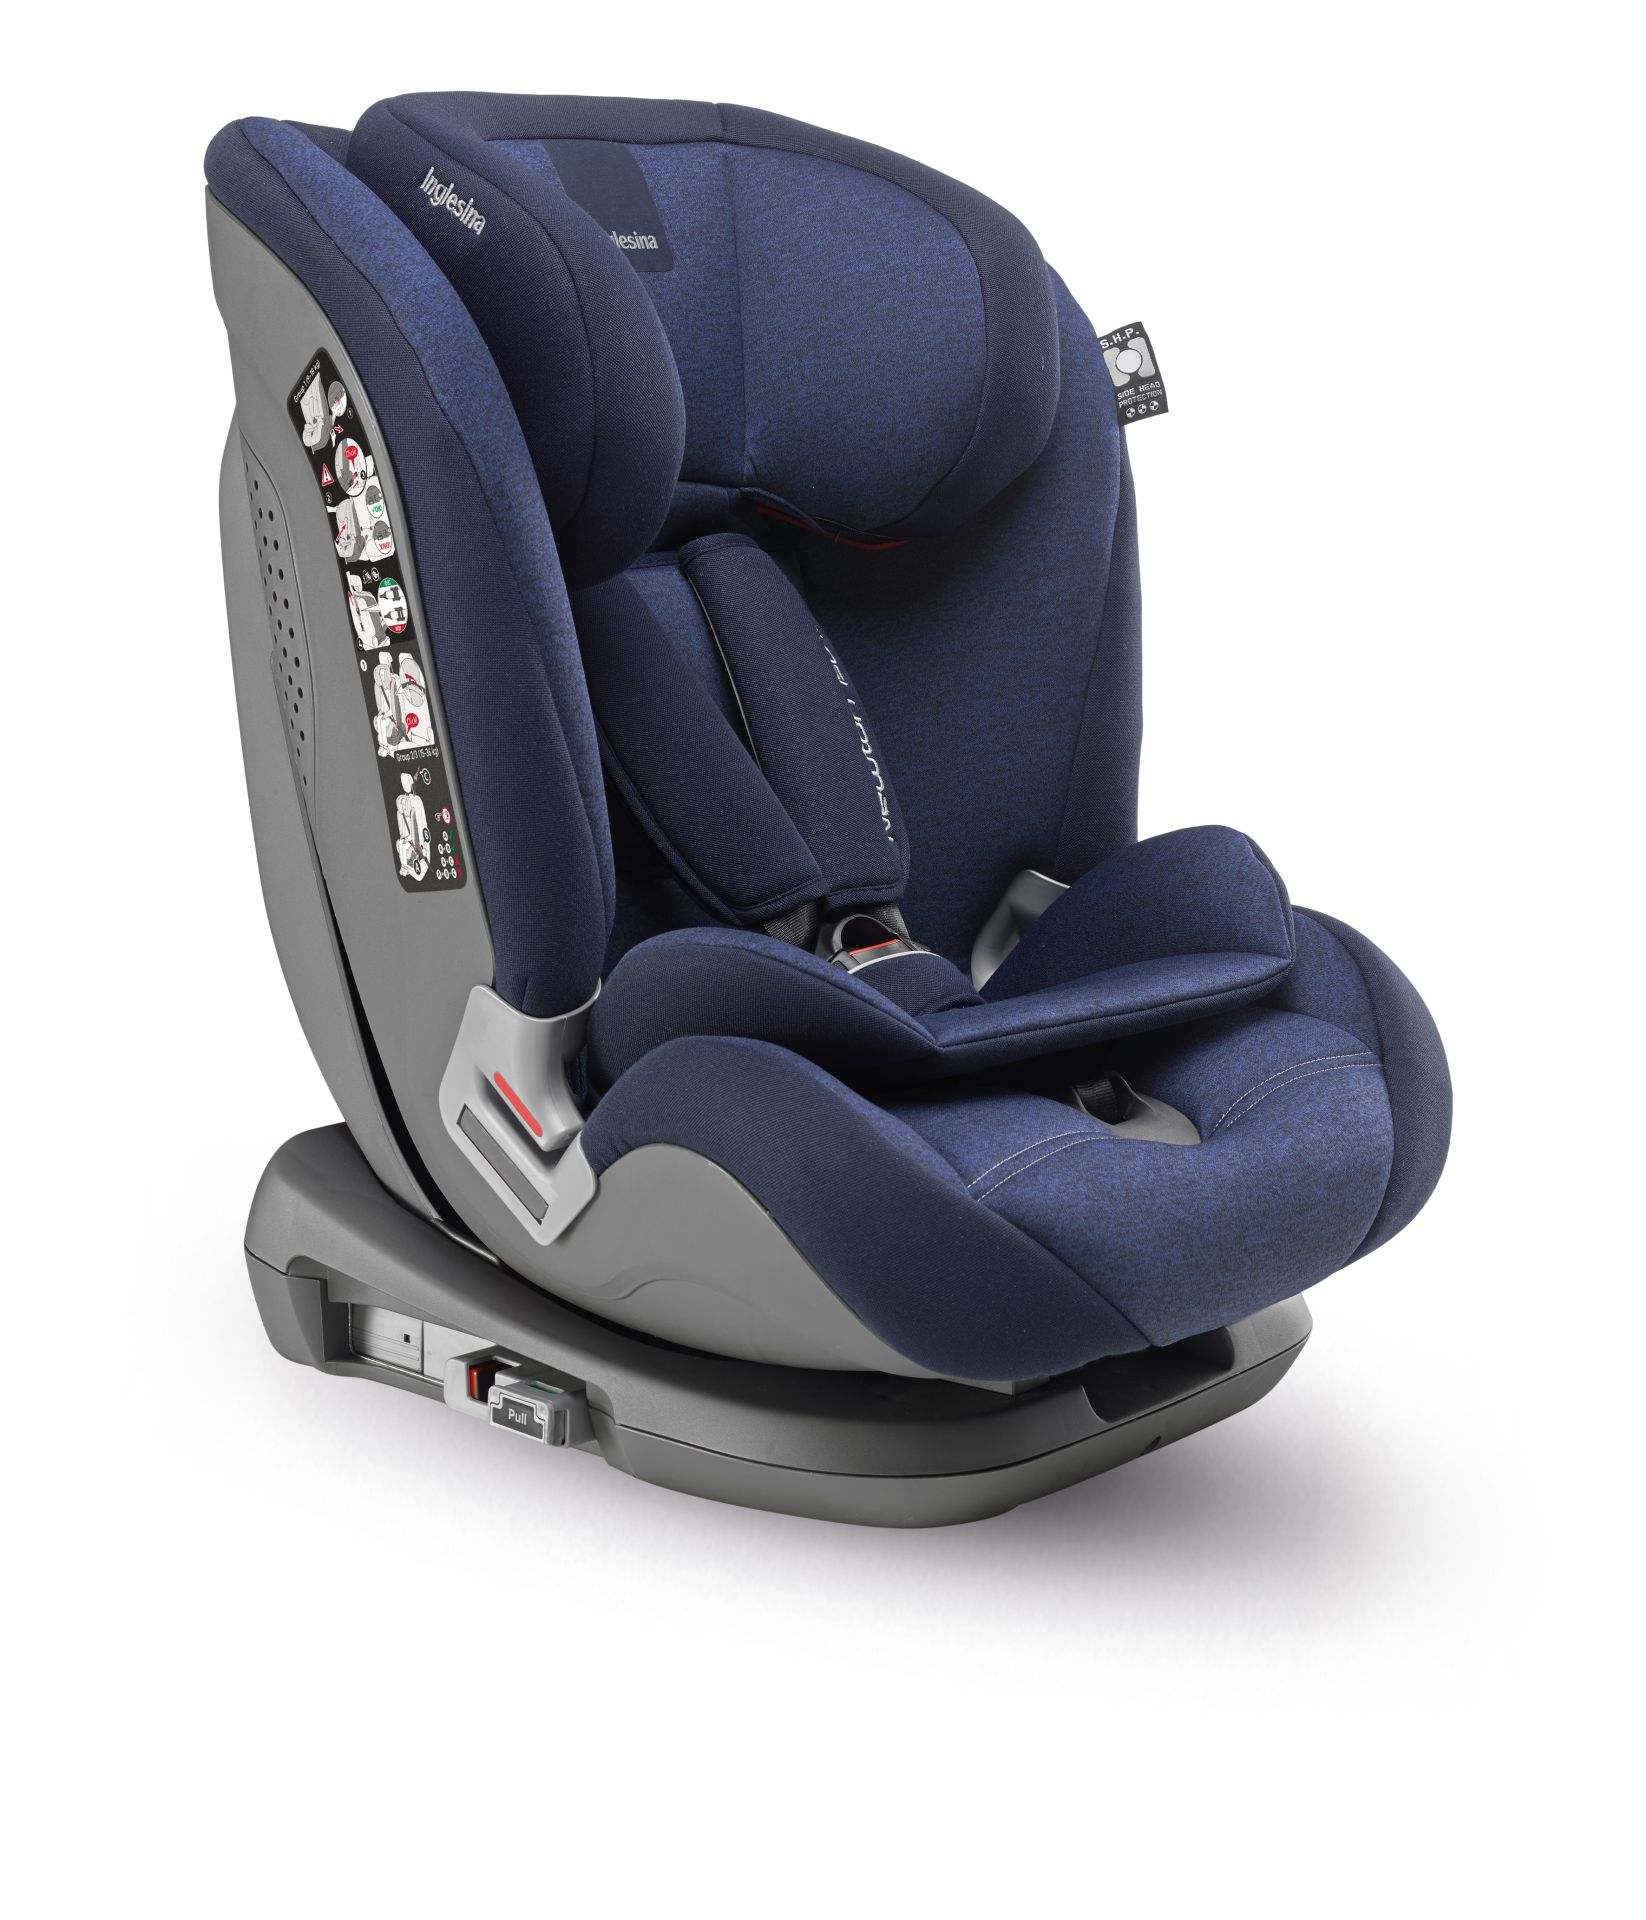 inglesina kindersitz newton 1 2 3 ifix 2018 marine buy at kidsroom car seats. Black Bedroom Furniture Sets. Home Design Ideas